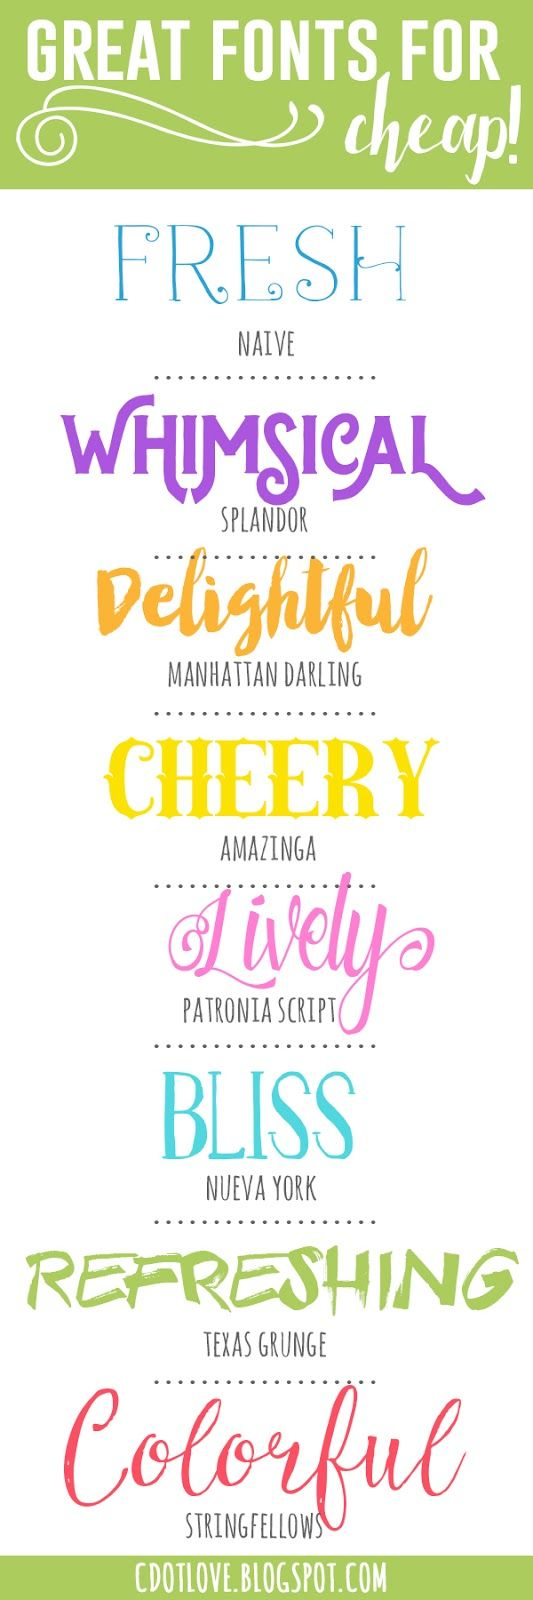 CdotLove Design { by Kristin Clove }: Fonts! Inexpensive and fun!